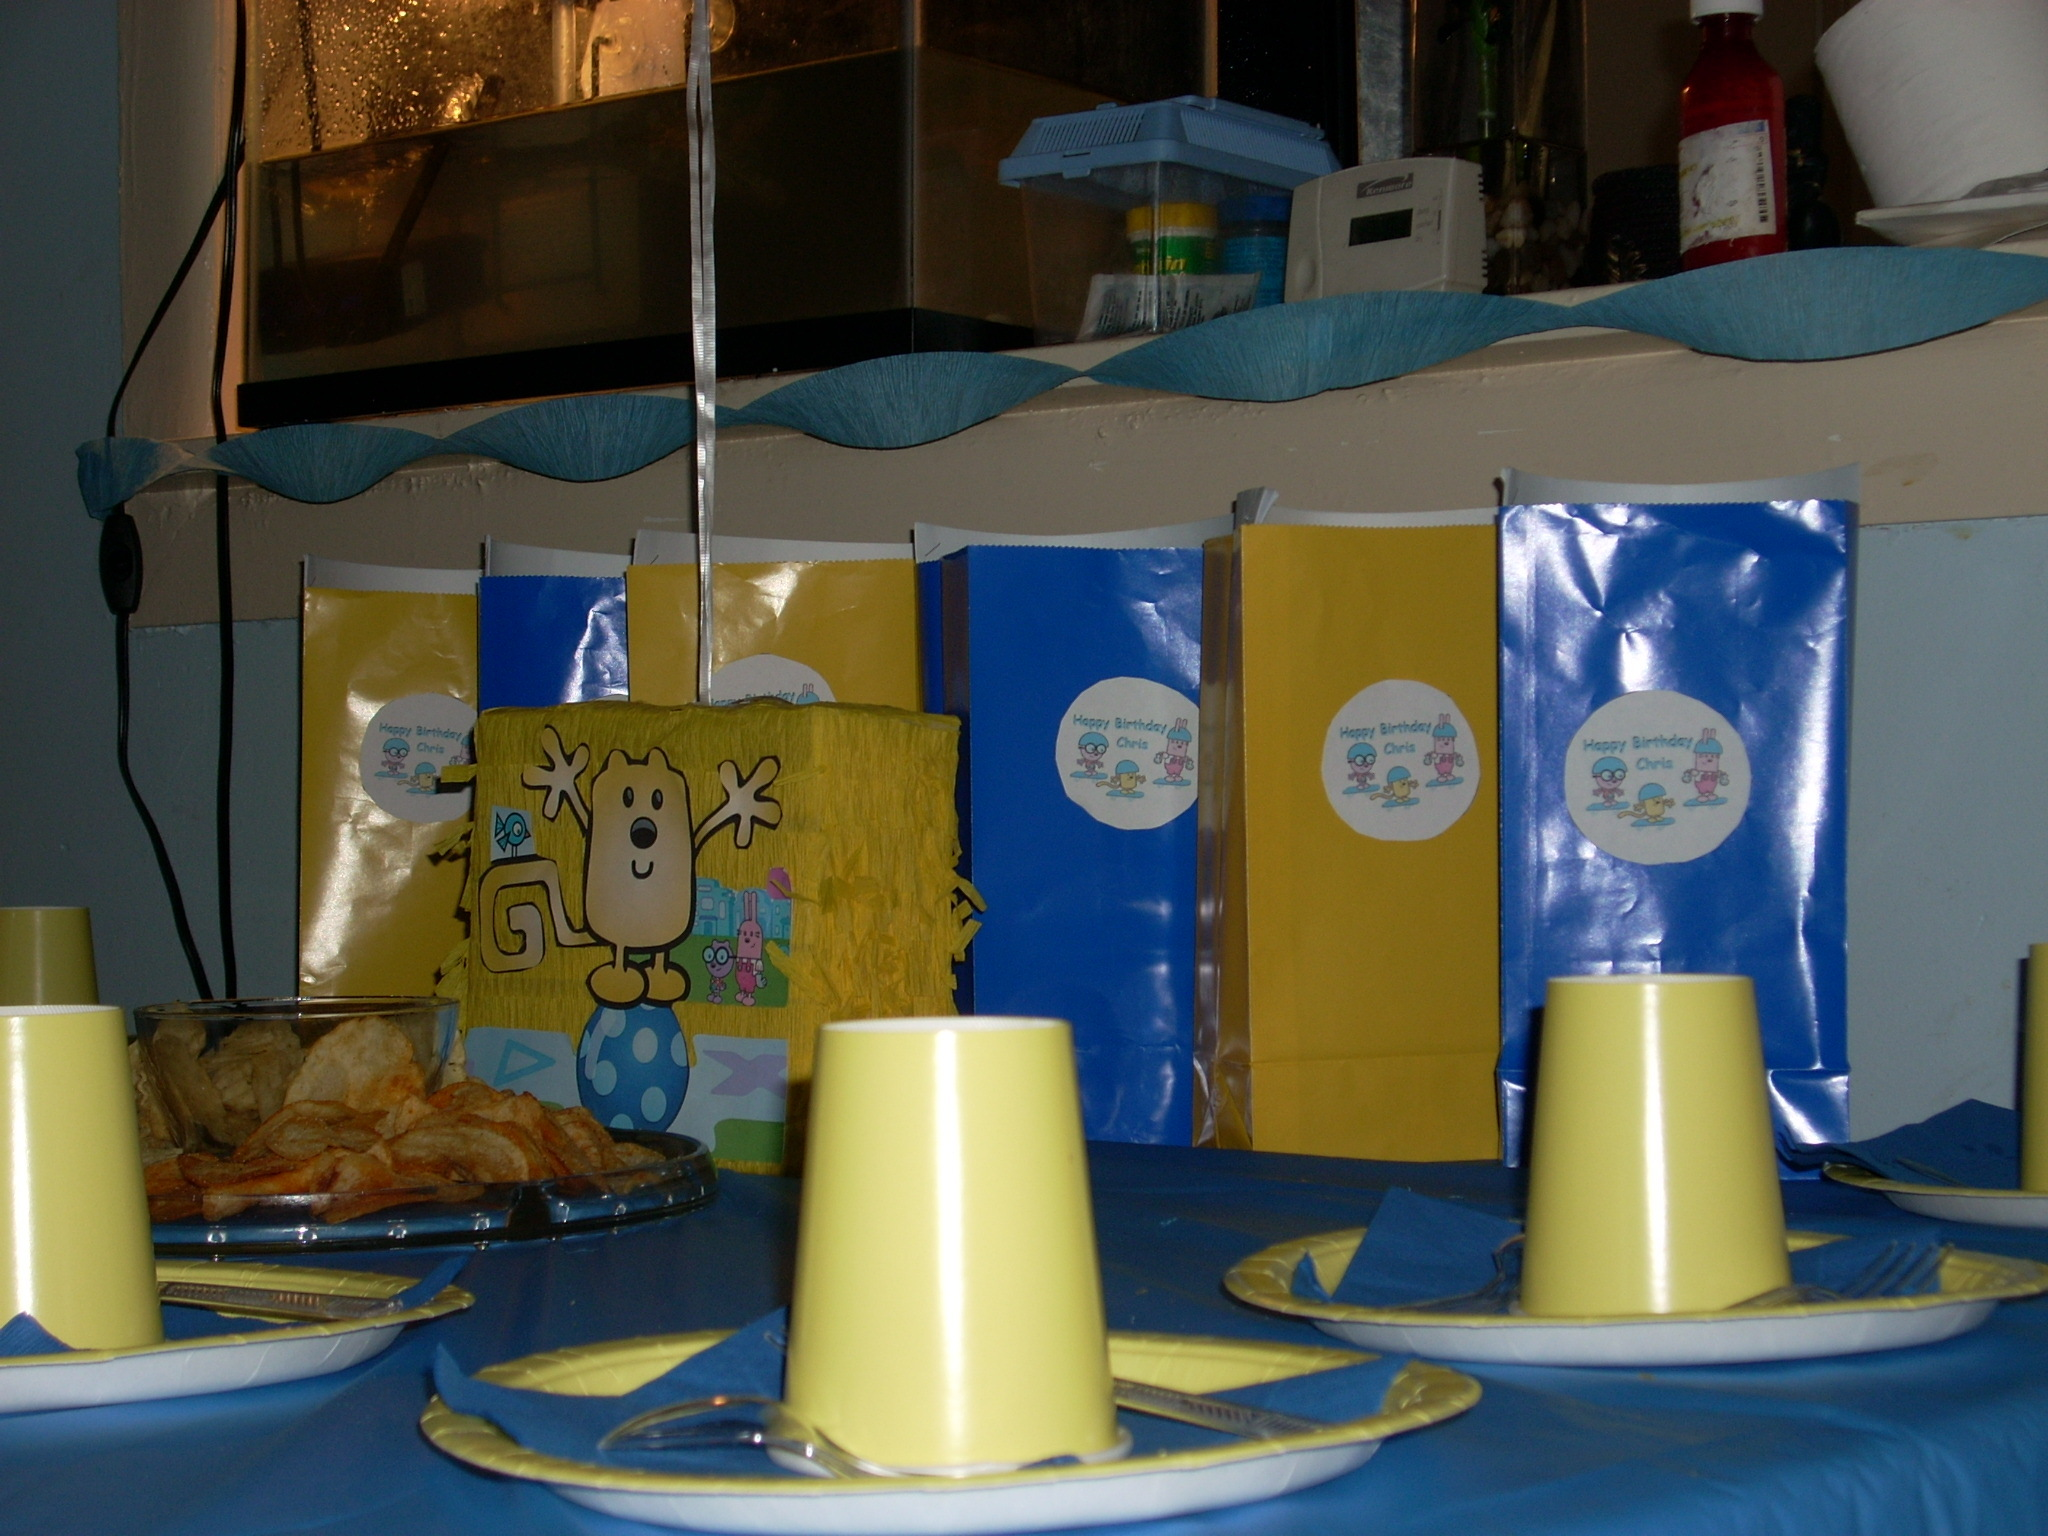 Favors & Gifts, favor, Favors, Centerpiece, Party, Children, Birthday, Decorations, Child, Royal engagement, Wow wow, Wow, Wubbzy